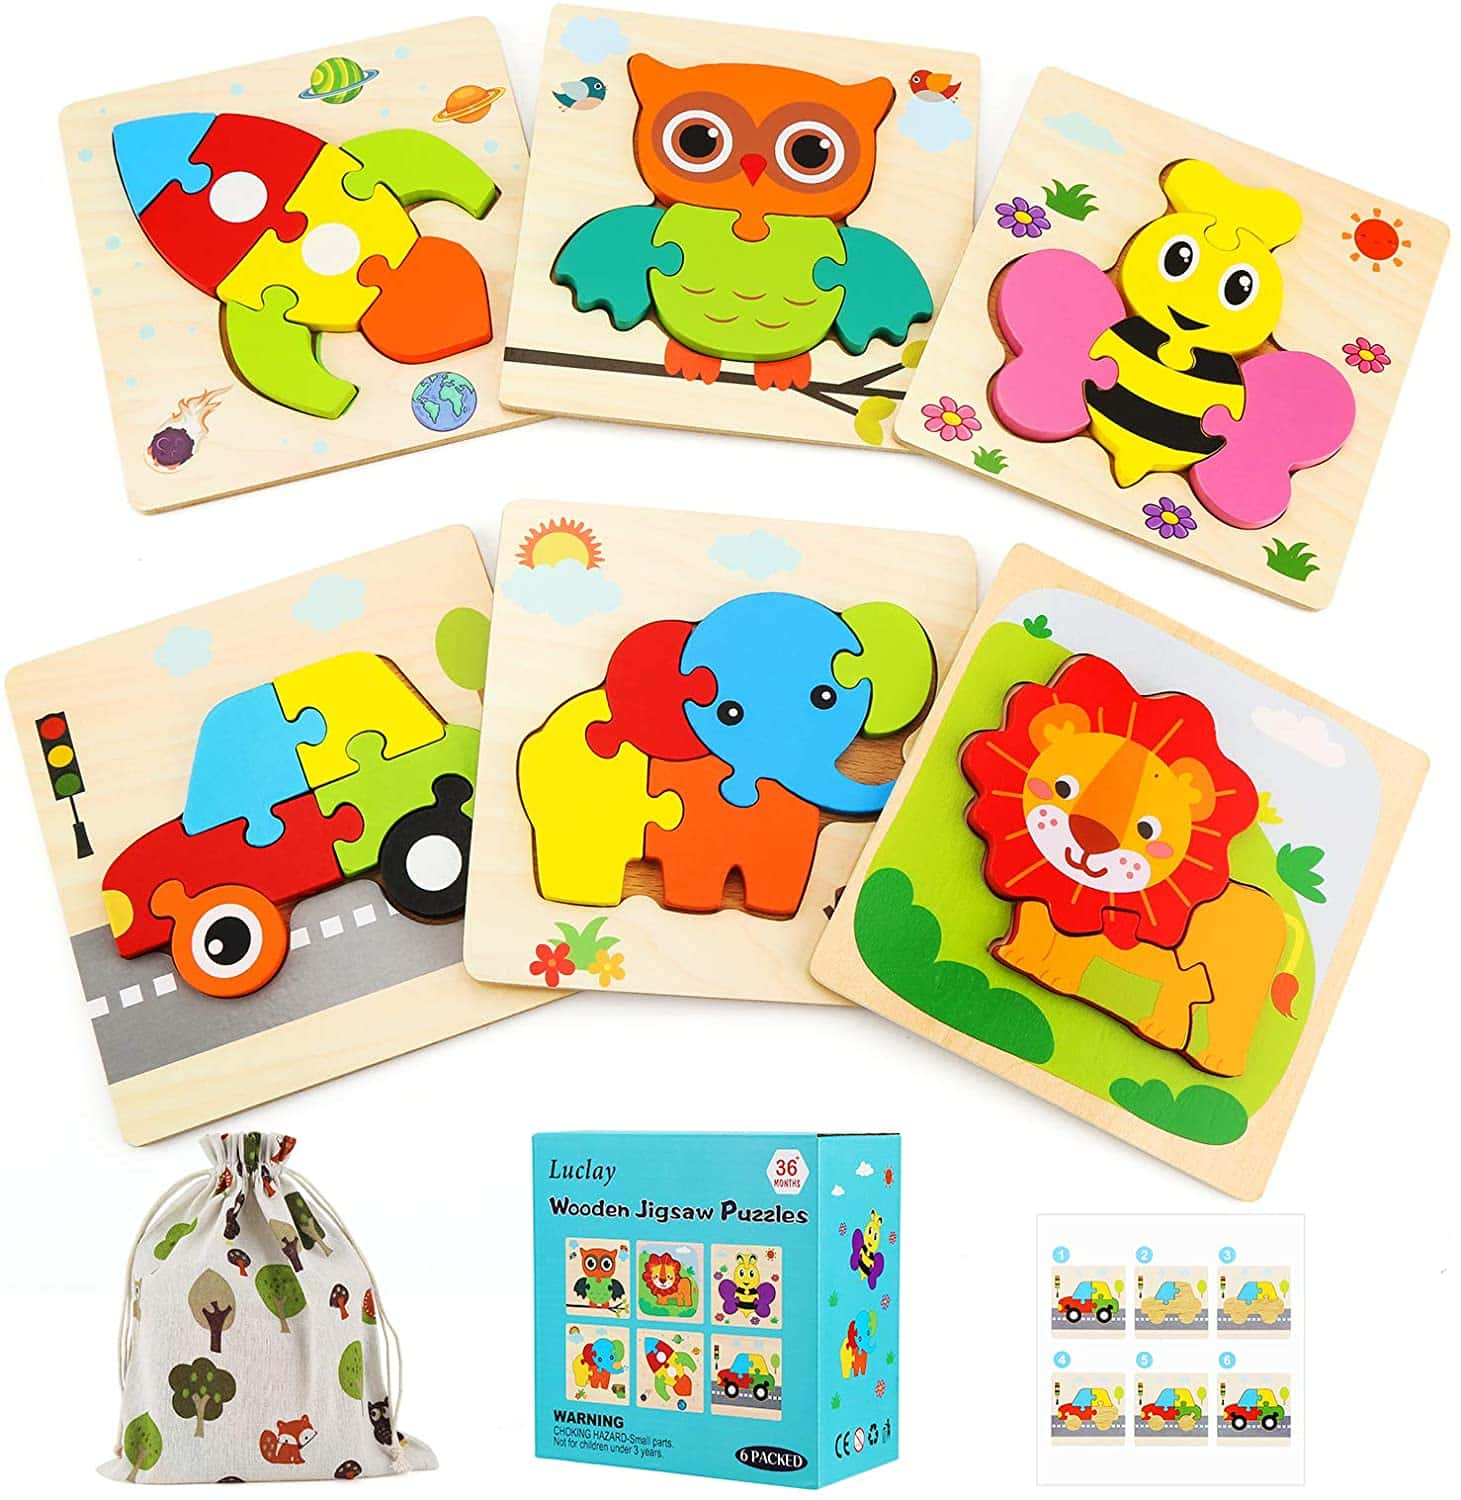 Luclay 3D Kinder Holzpuzzle Steckpuzzle